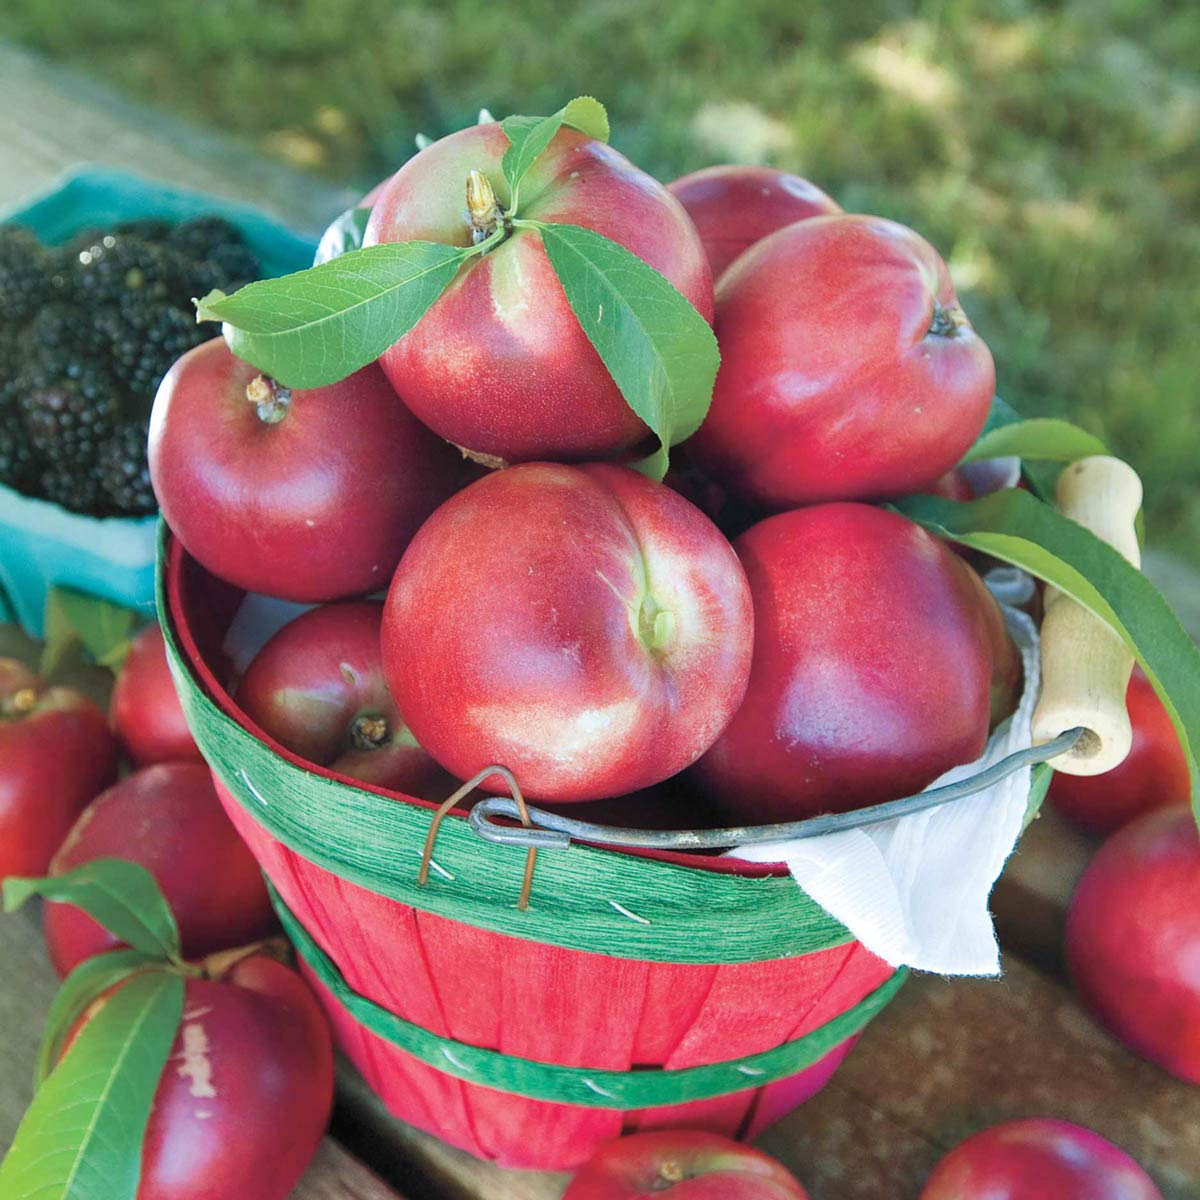 Nectarine Yumm Yumm REACHABLES Bare Root Fruit Tree - Enjoy Nectarines with Needing a Ladder to Maintain! Includes 1 Tree per Order. Due to regulations Can't Ship to AL AR CA CO ID LA MS OR WA by Gurneys (Image #2)